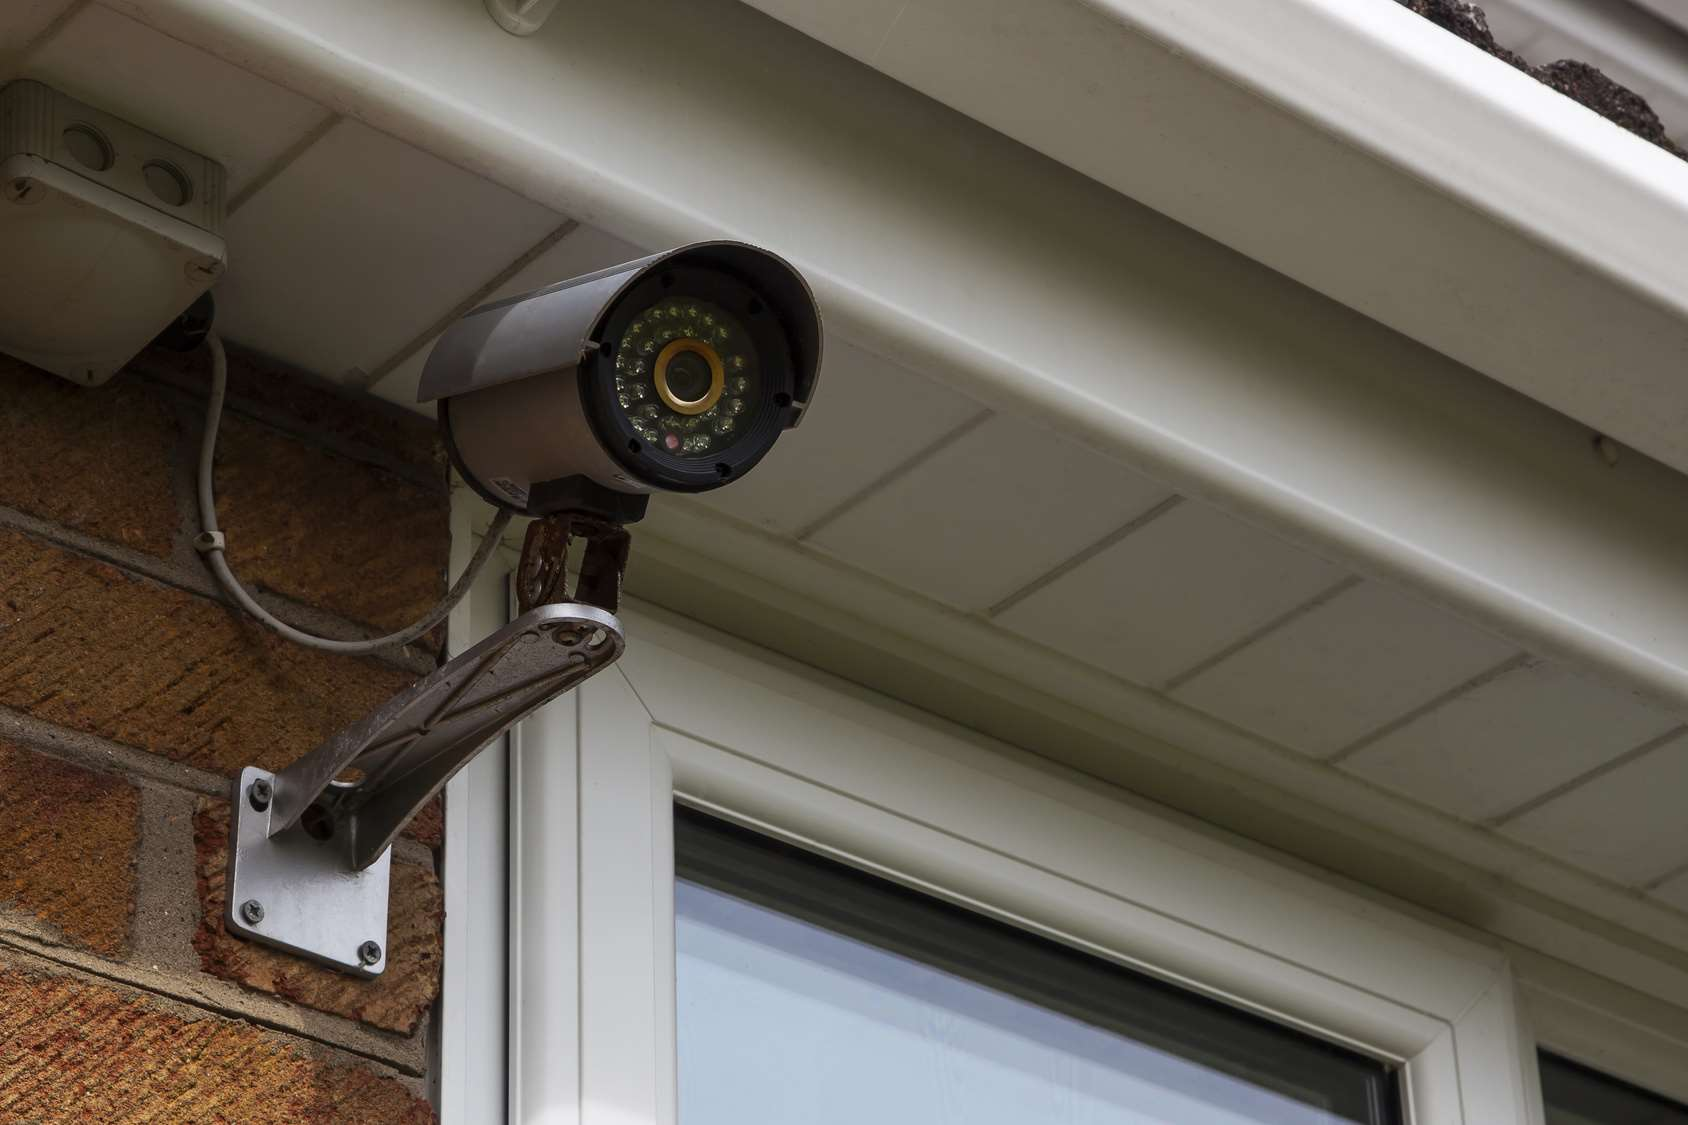 CCTV security camera for home security and surveillance.